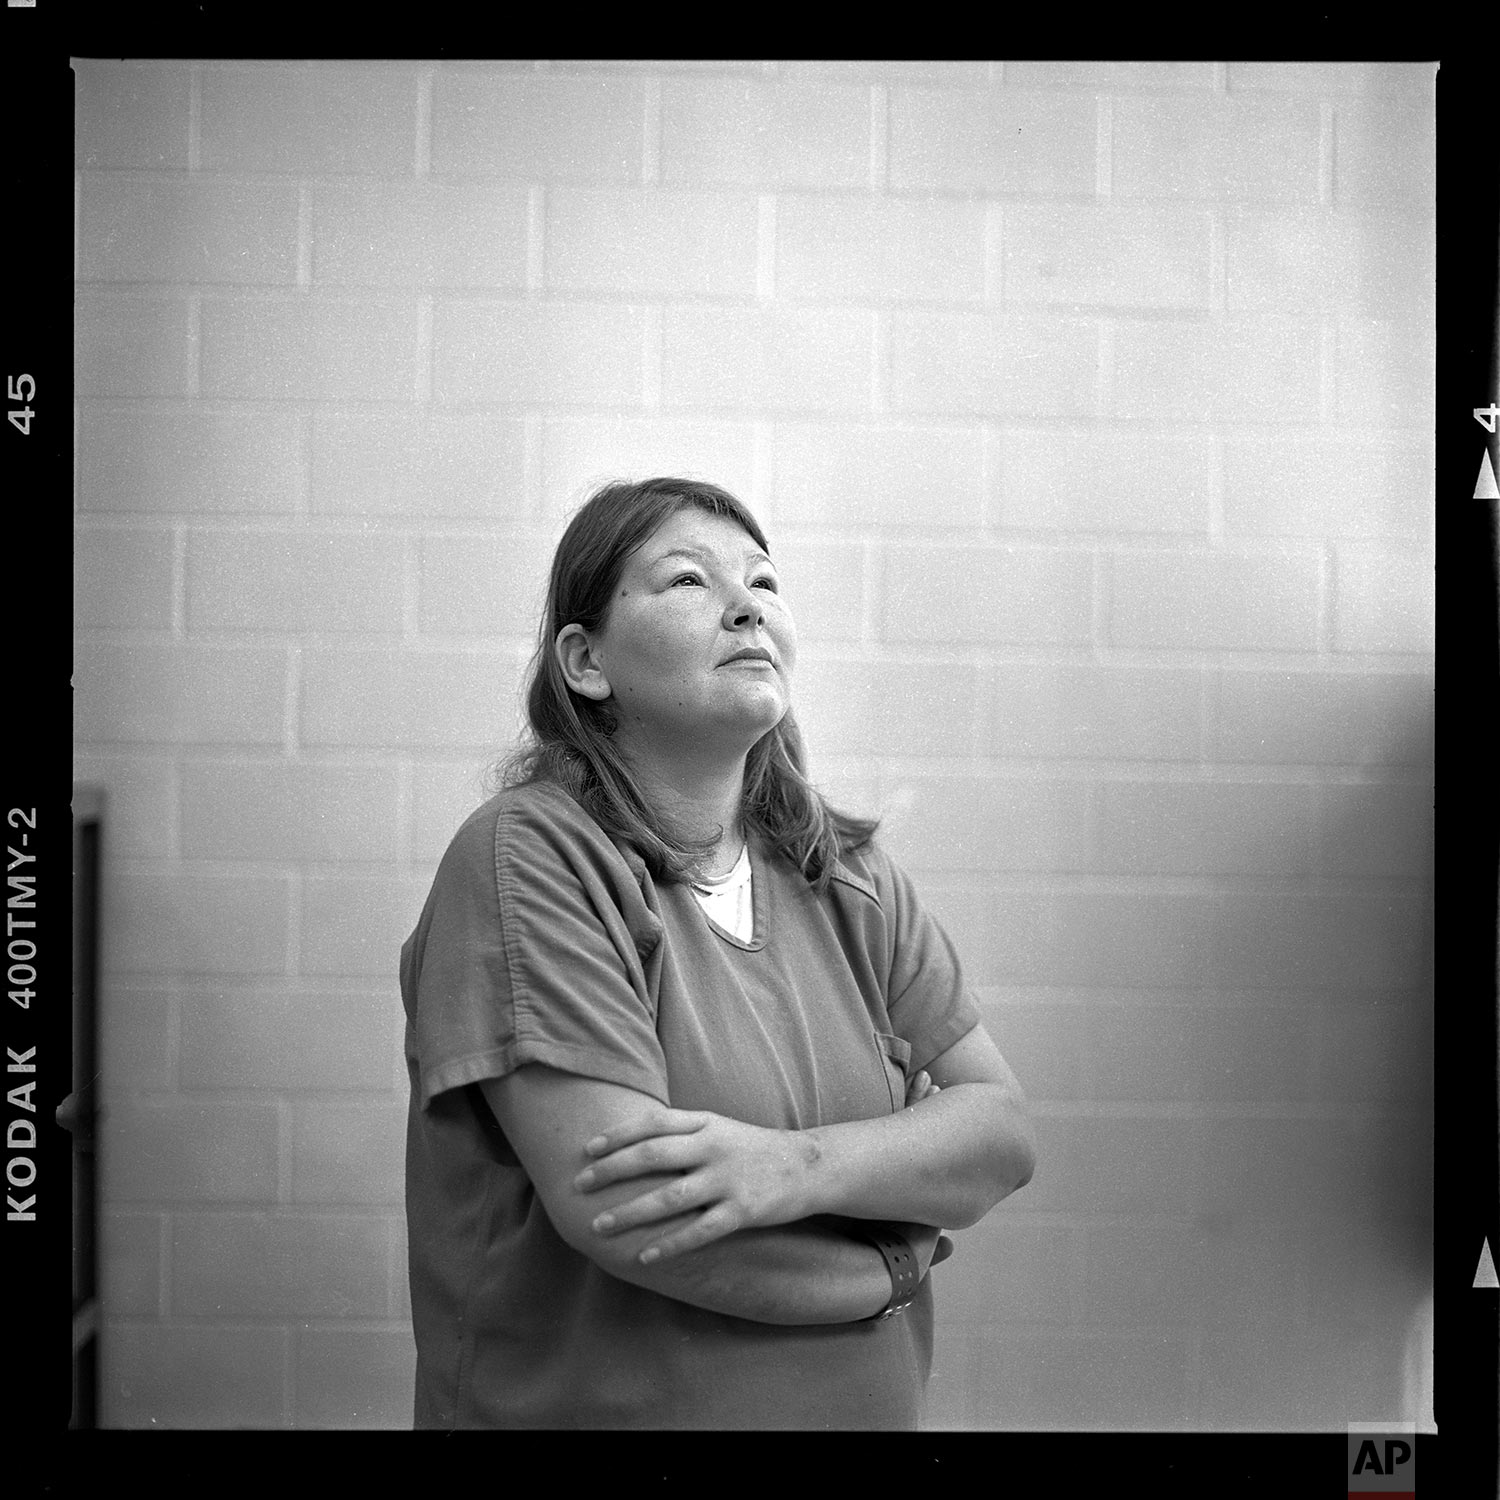 """Christy Wilson, age 29. """"One of the things that bothers me the most is my son came to visit me in jail and he was like 'mom please don't make me come and visit you here again.' It's hard. To see that little face, that gives me all the strength I need. How could you do something like that to someone you love so dearly? It's not the you don't love your kids but the addiction takes hold of you and you'll do anything you have to do to get it. It's a vicious cycle that never ends unless you quit drugs,"""" said Wilson. (AP Photo/David Goldman)"""